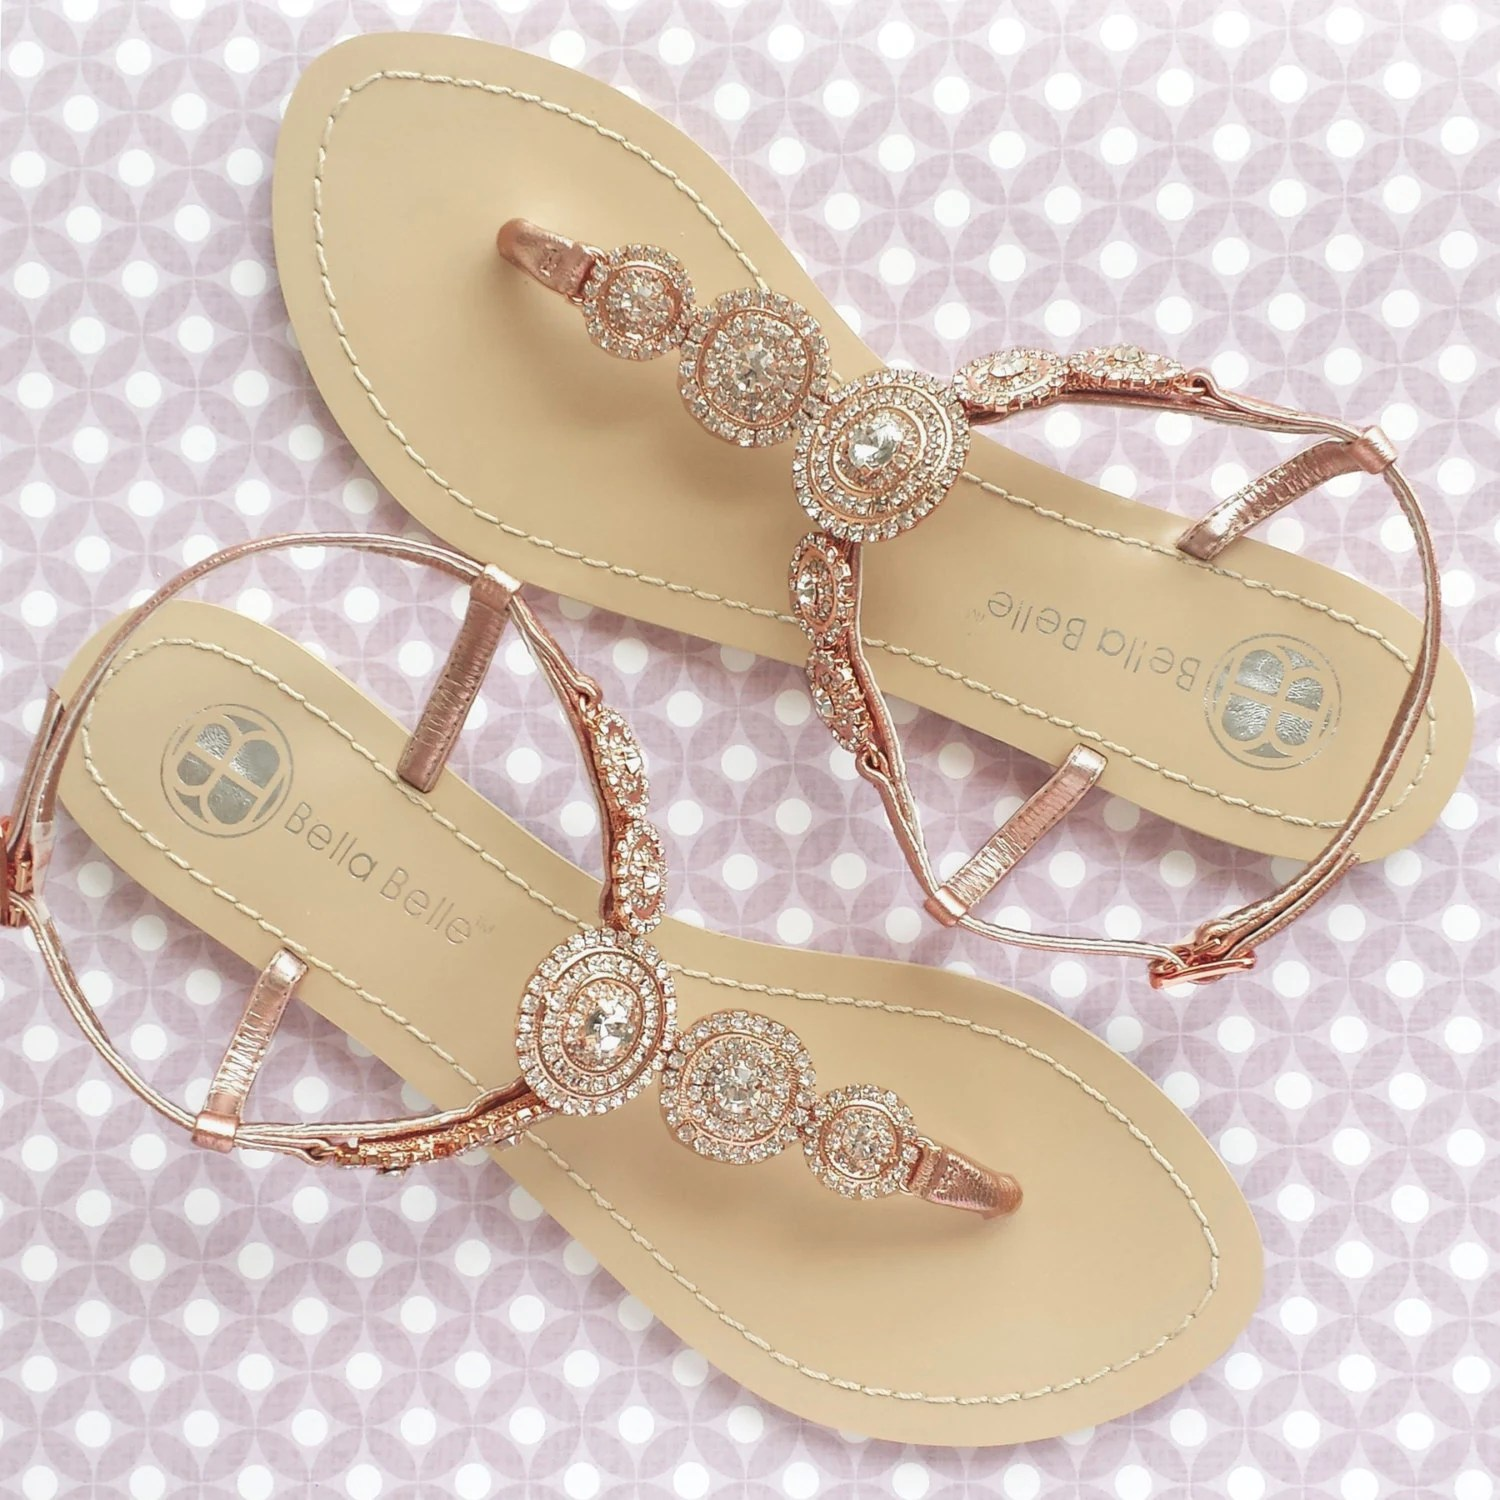 bohemian wedding sandals boho chic with wedding sandals for bride Bridal Thong Shoes Destination Beach zoom